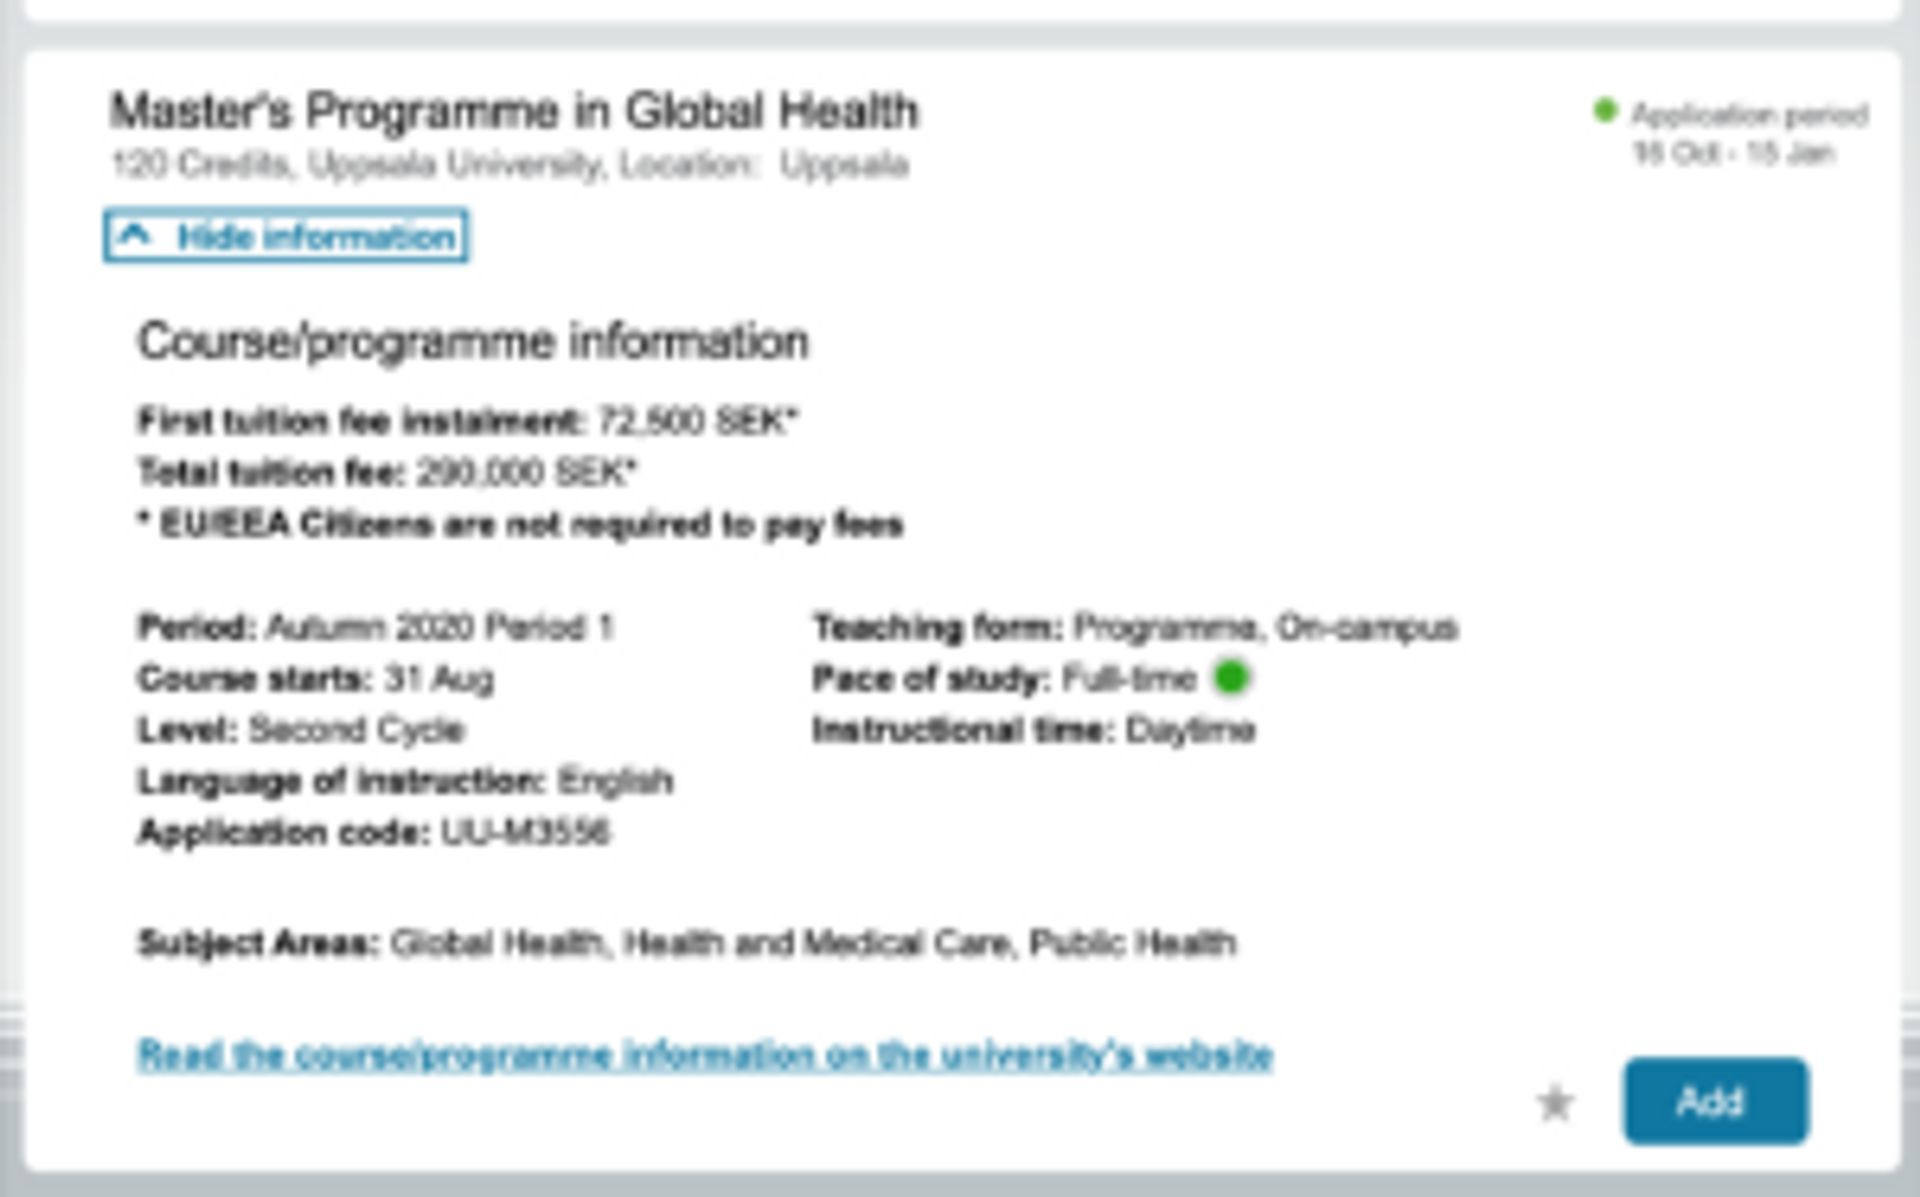 Screenshot showing information about the Master Programme in Global Health at Uppsala University.